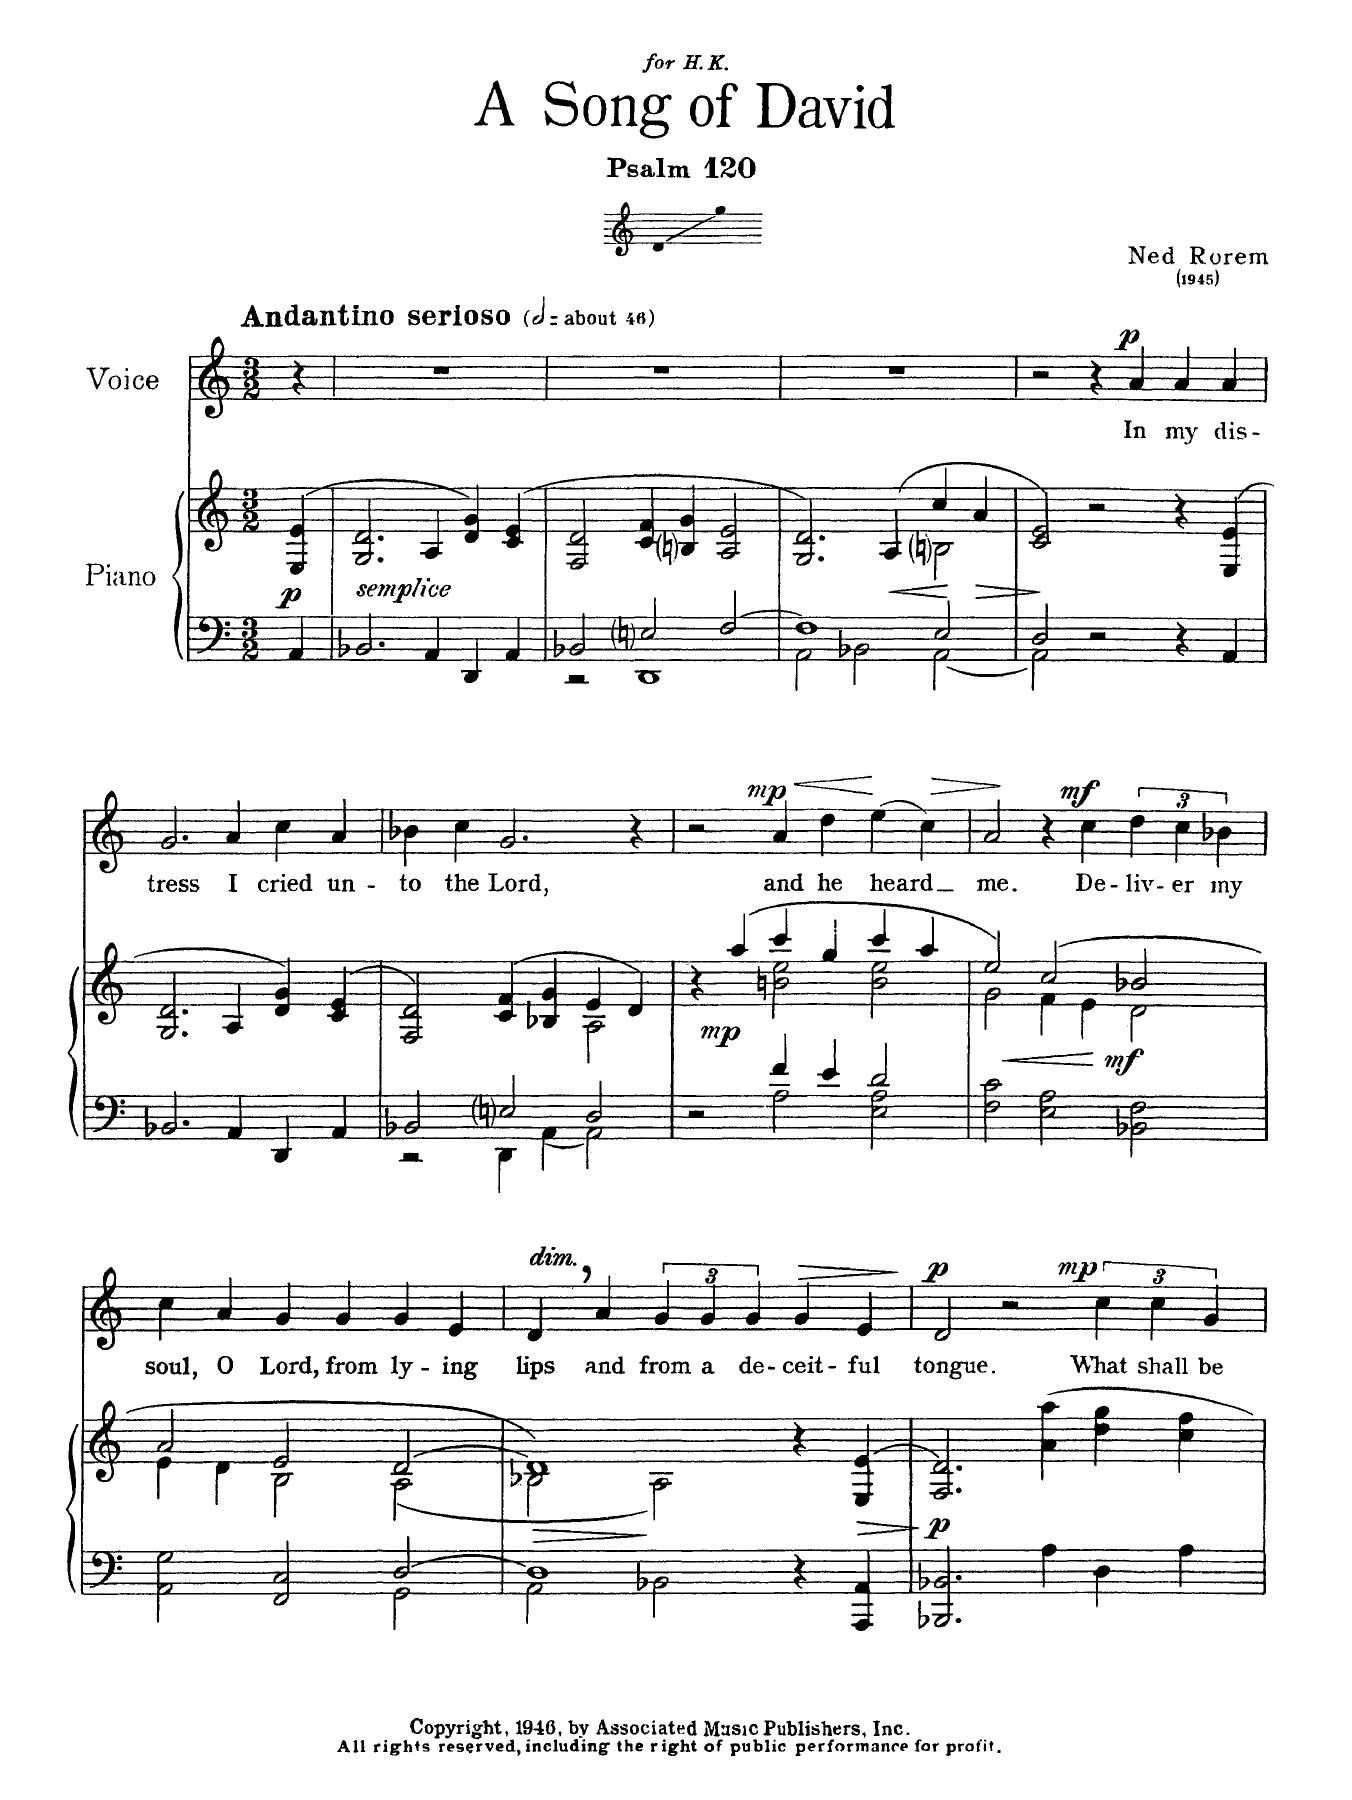 Ned Rorem - Song Of David (Psalm 120)